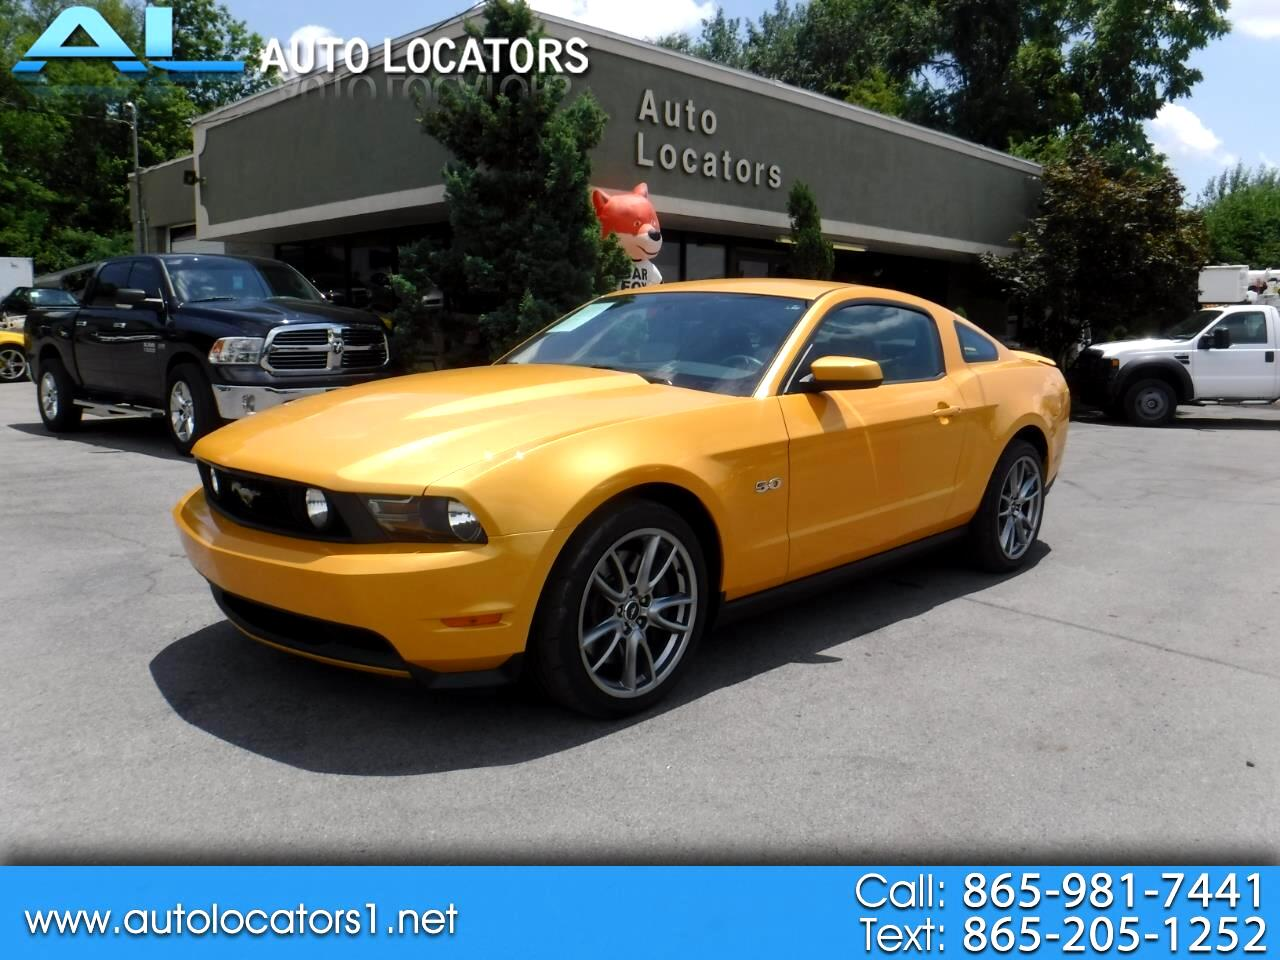 2011 Ford Mustang 2dr Cpe GT